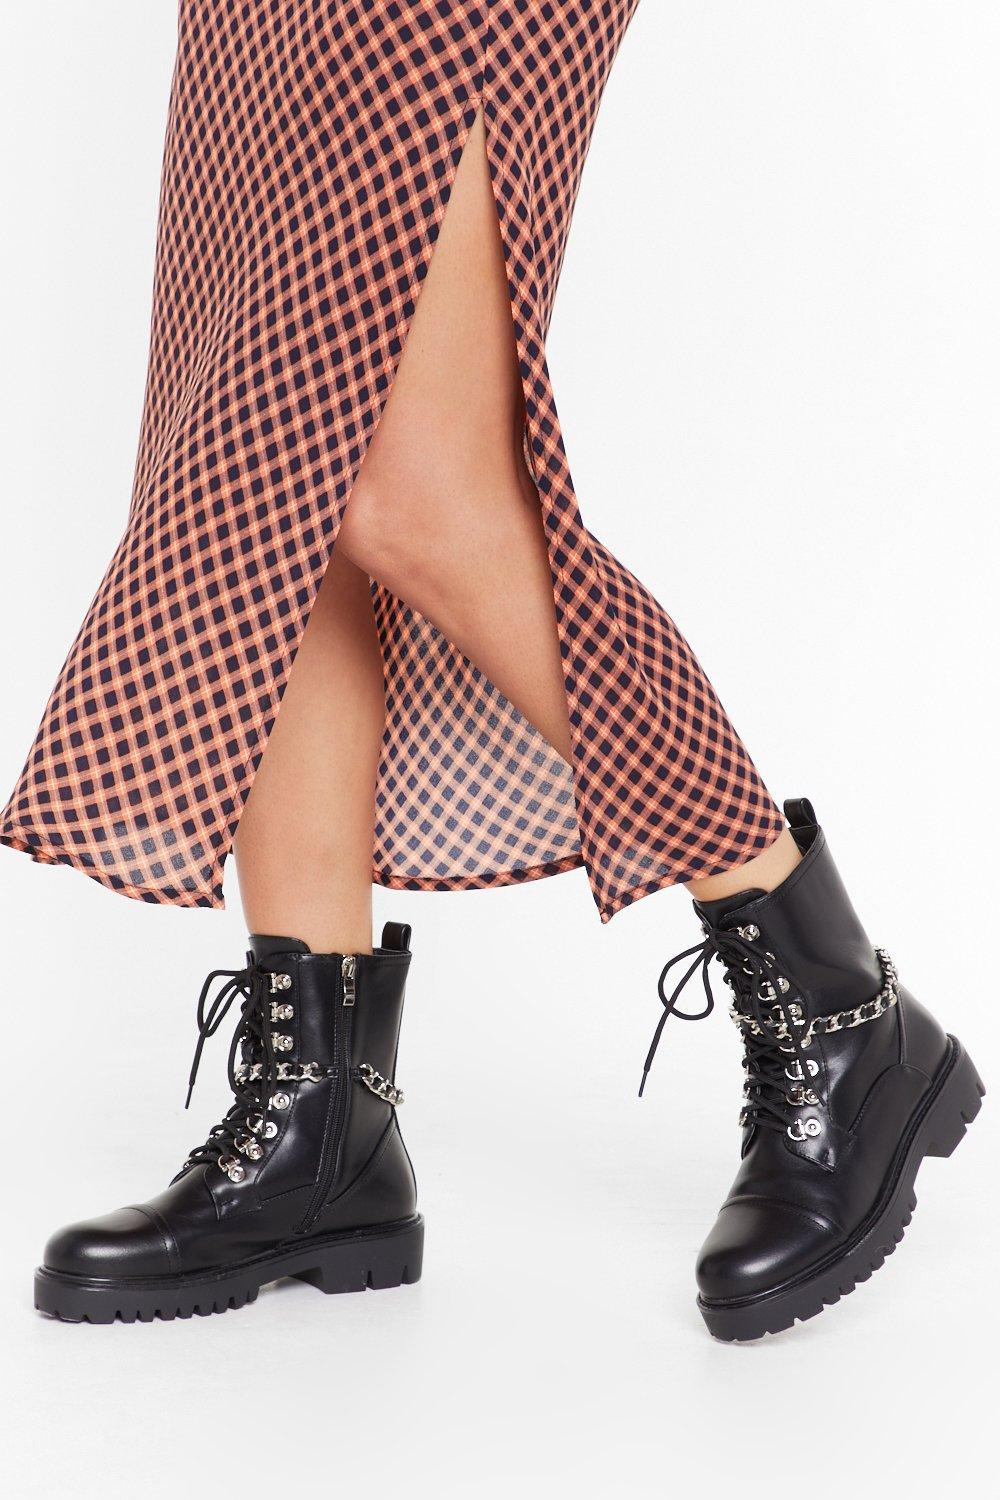 Image of Ready For a Chain-ge Faux Leather Lace-Up Boots